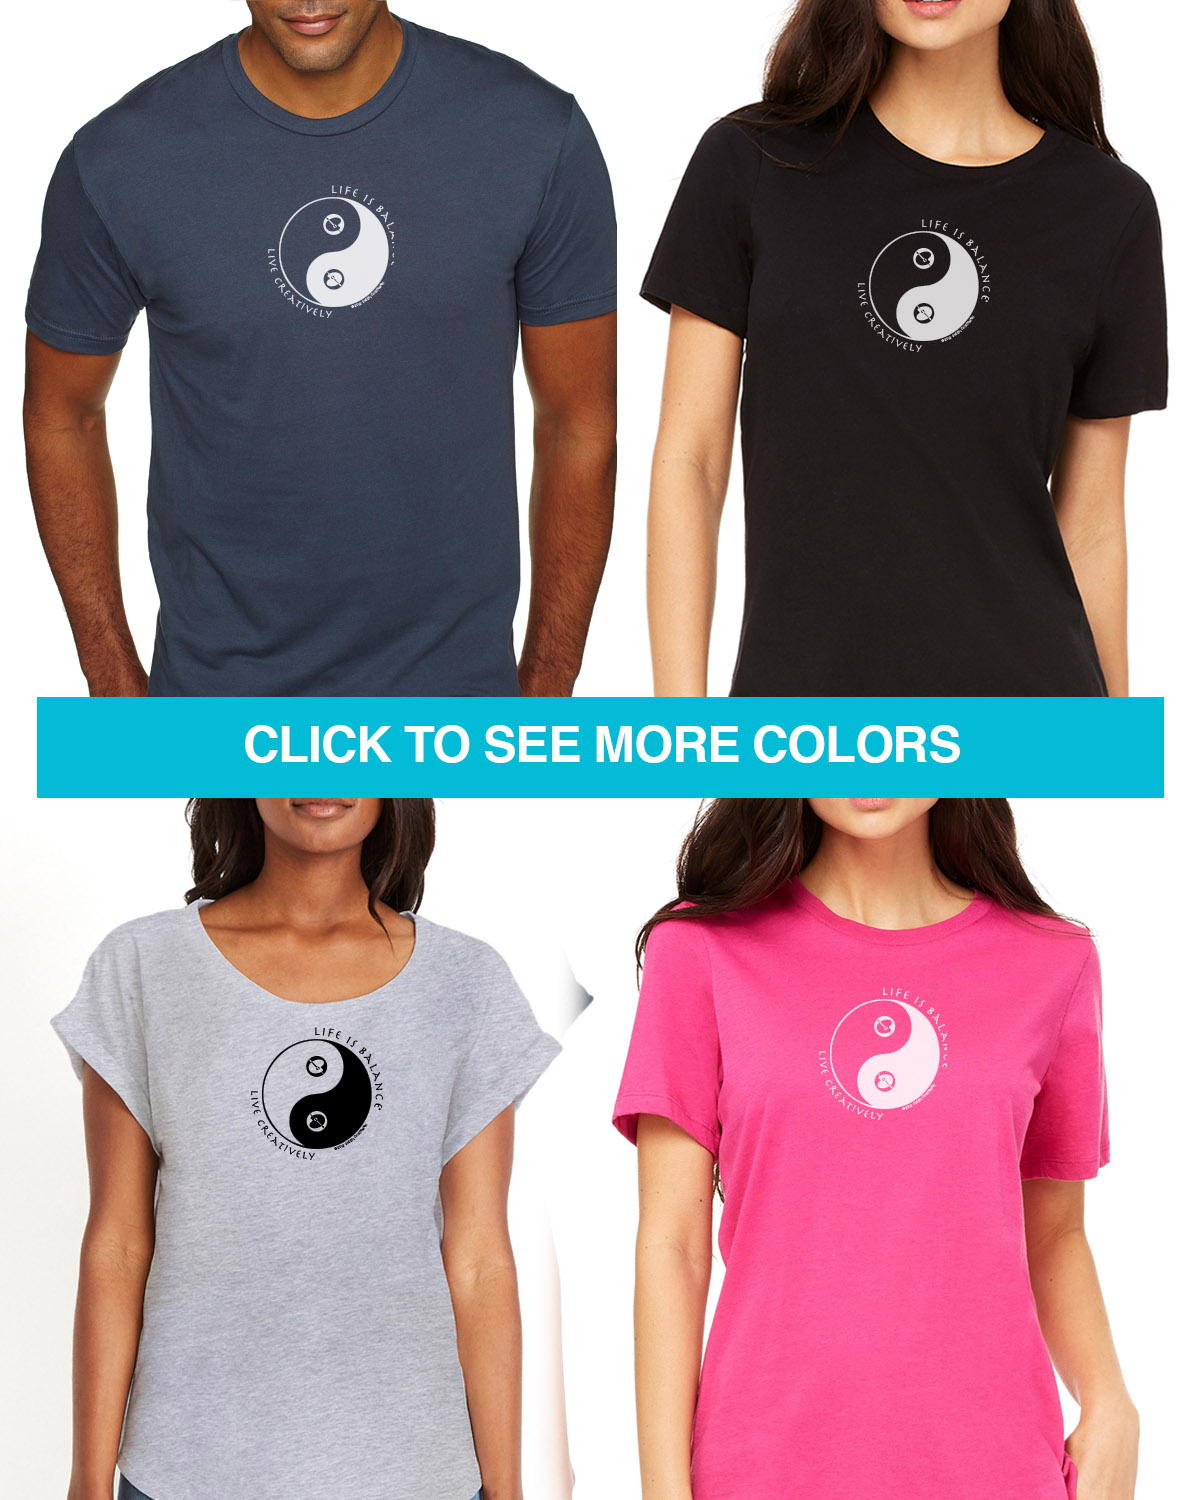 Short sleeve artist t-shirts for men and women